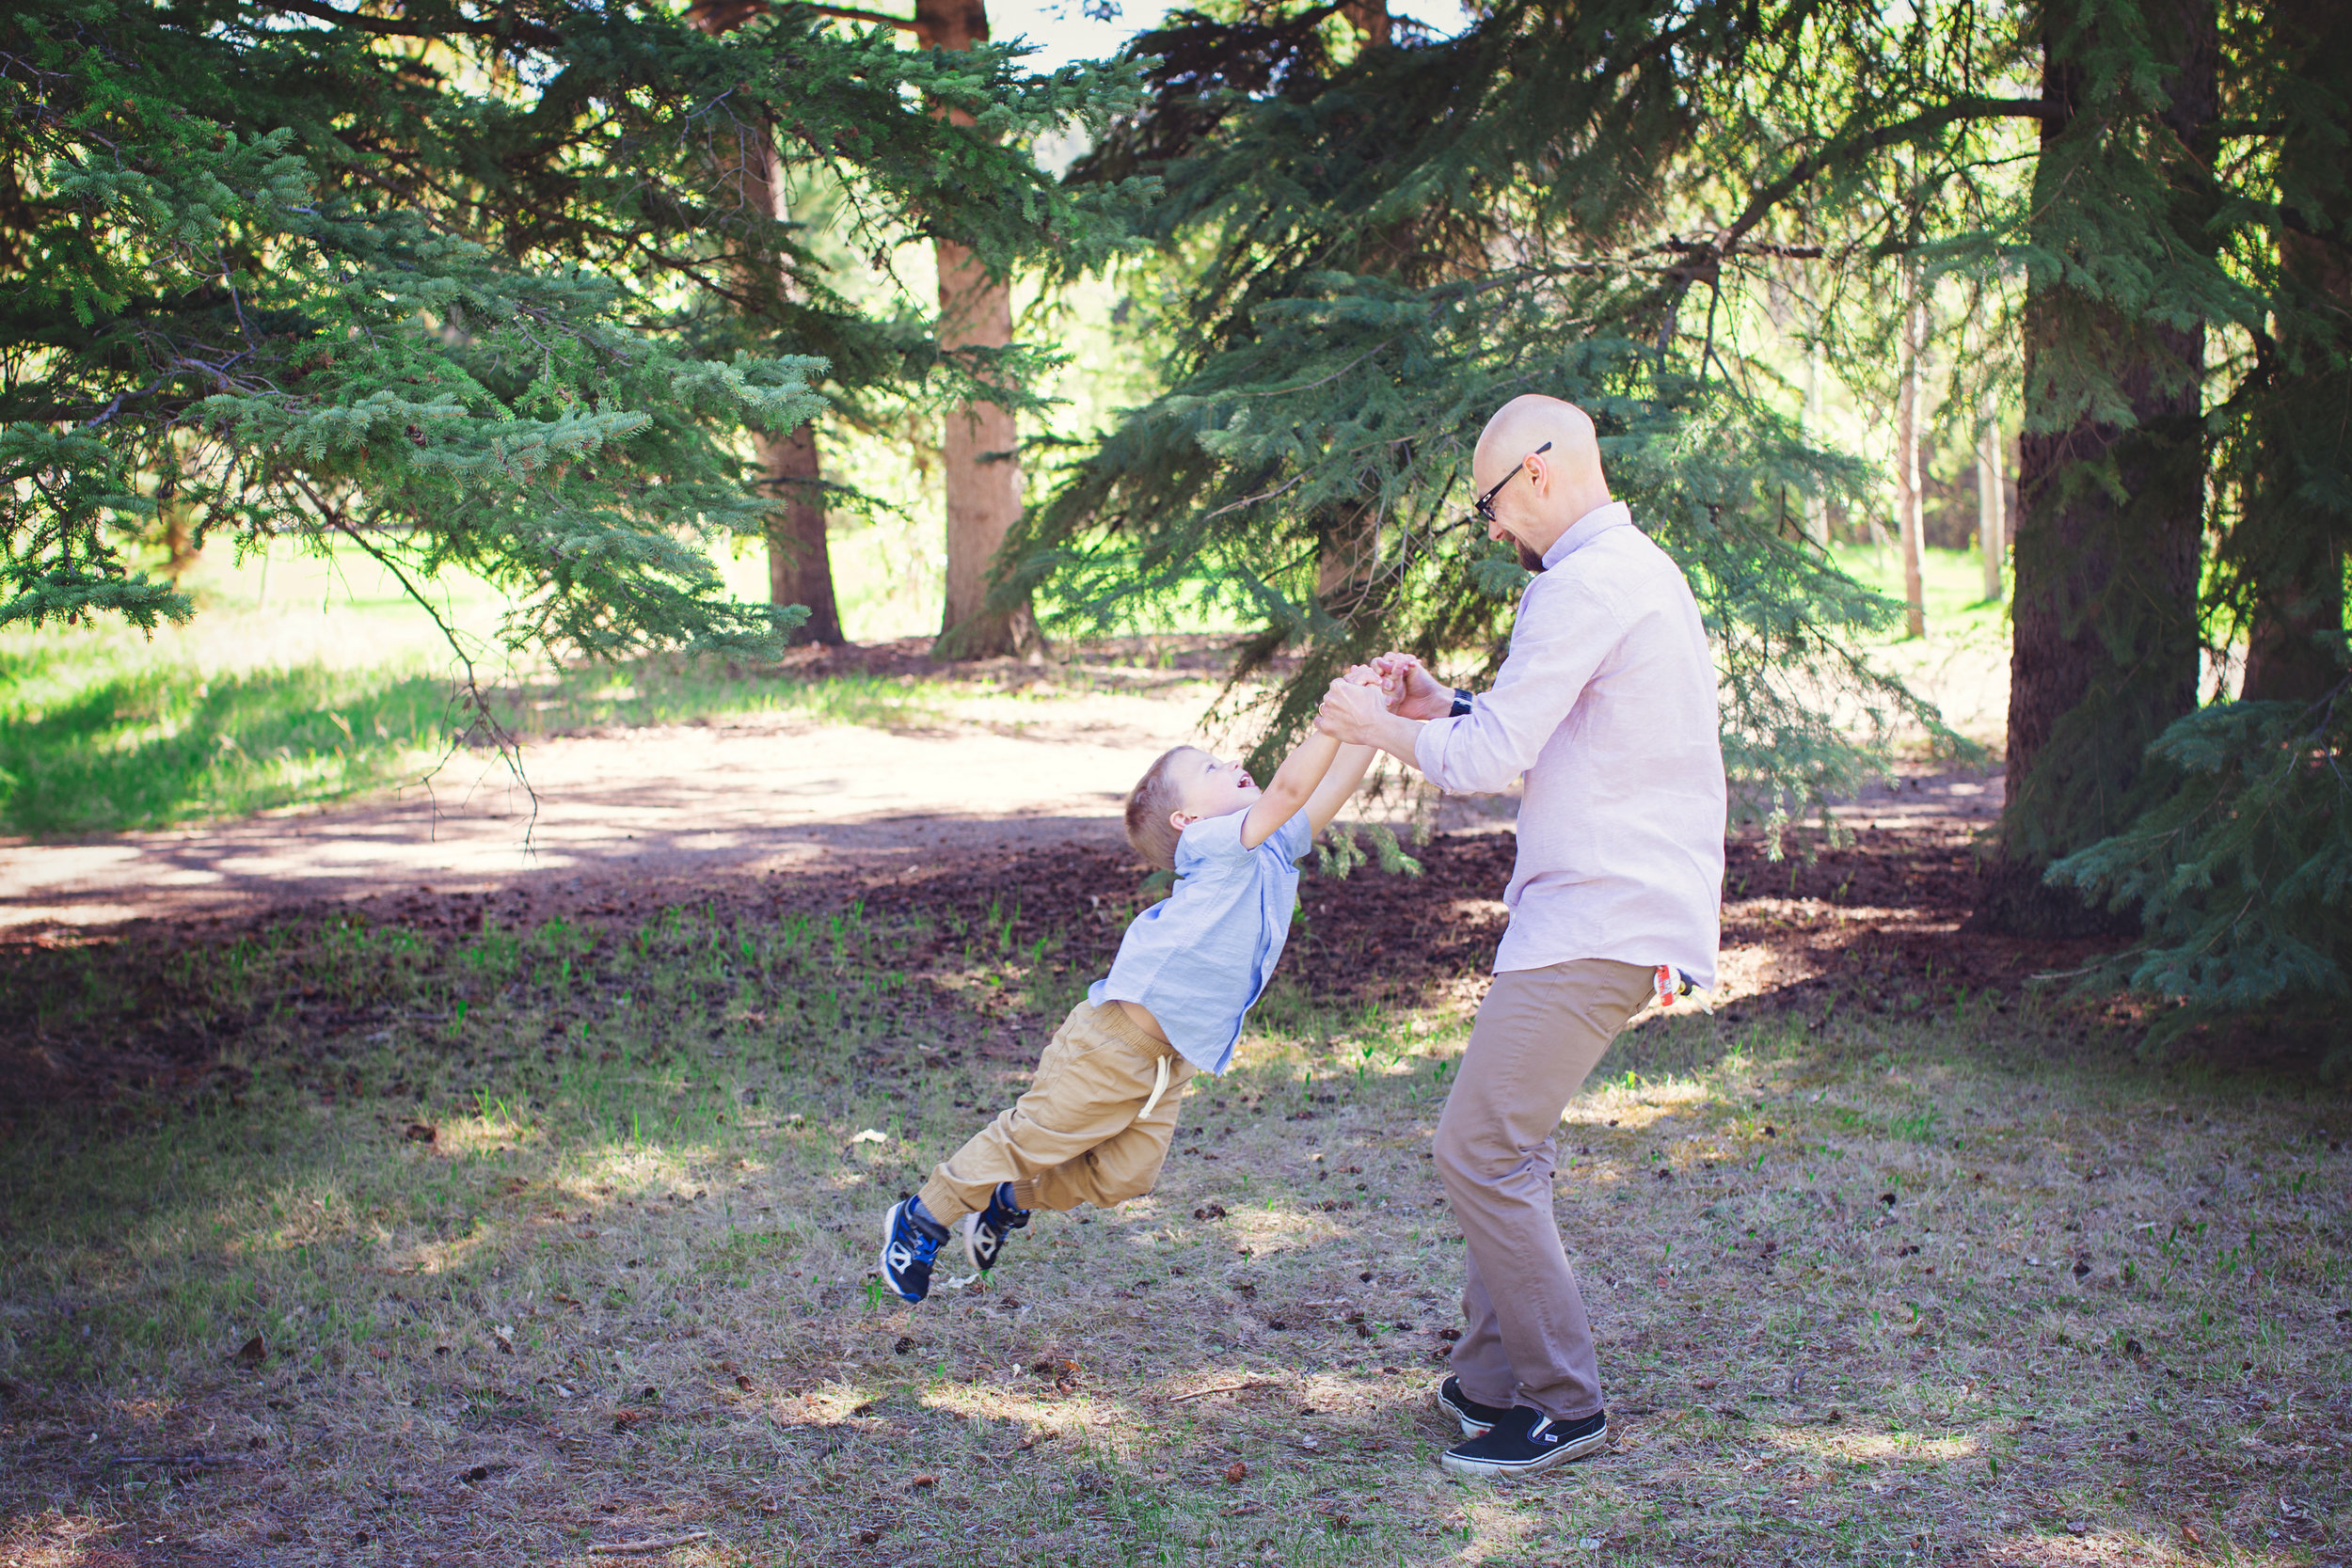 Dad and son playing in the park. Calgary Family photographer. Milashka Photography